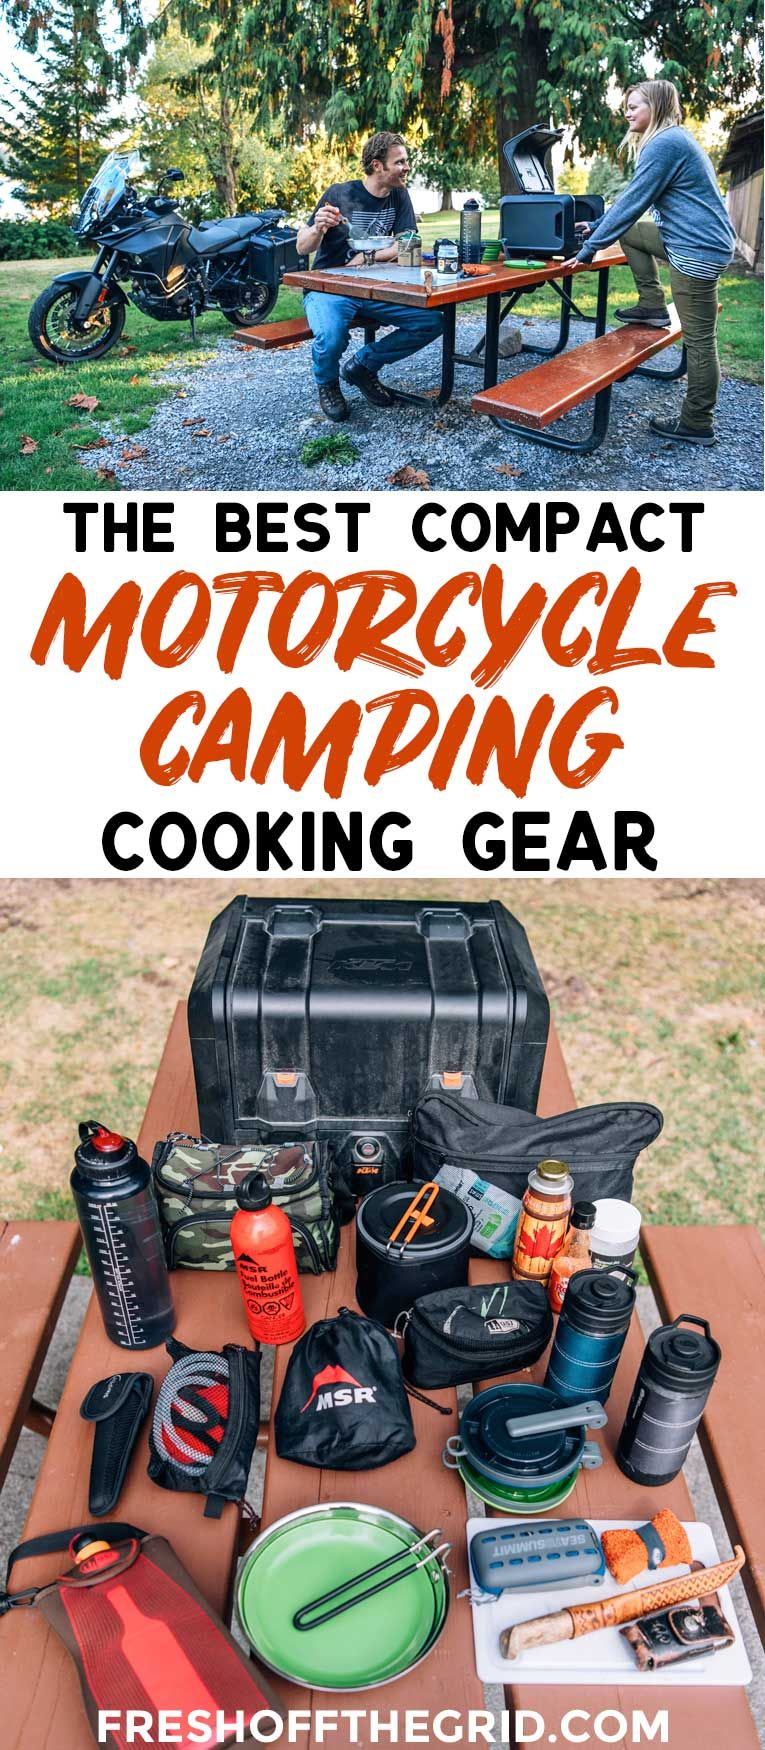 Eating Well On Two Wheels Motorcycle Camping Cooking Gear Things